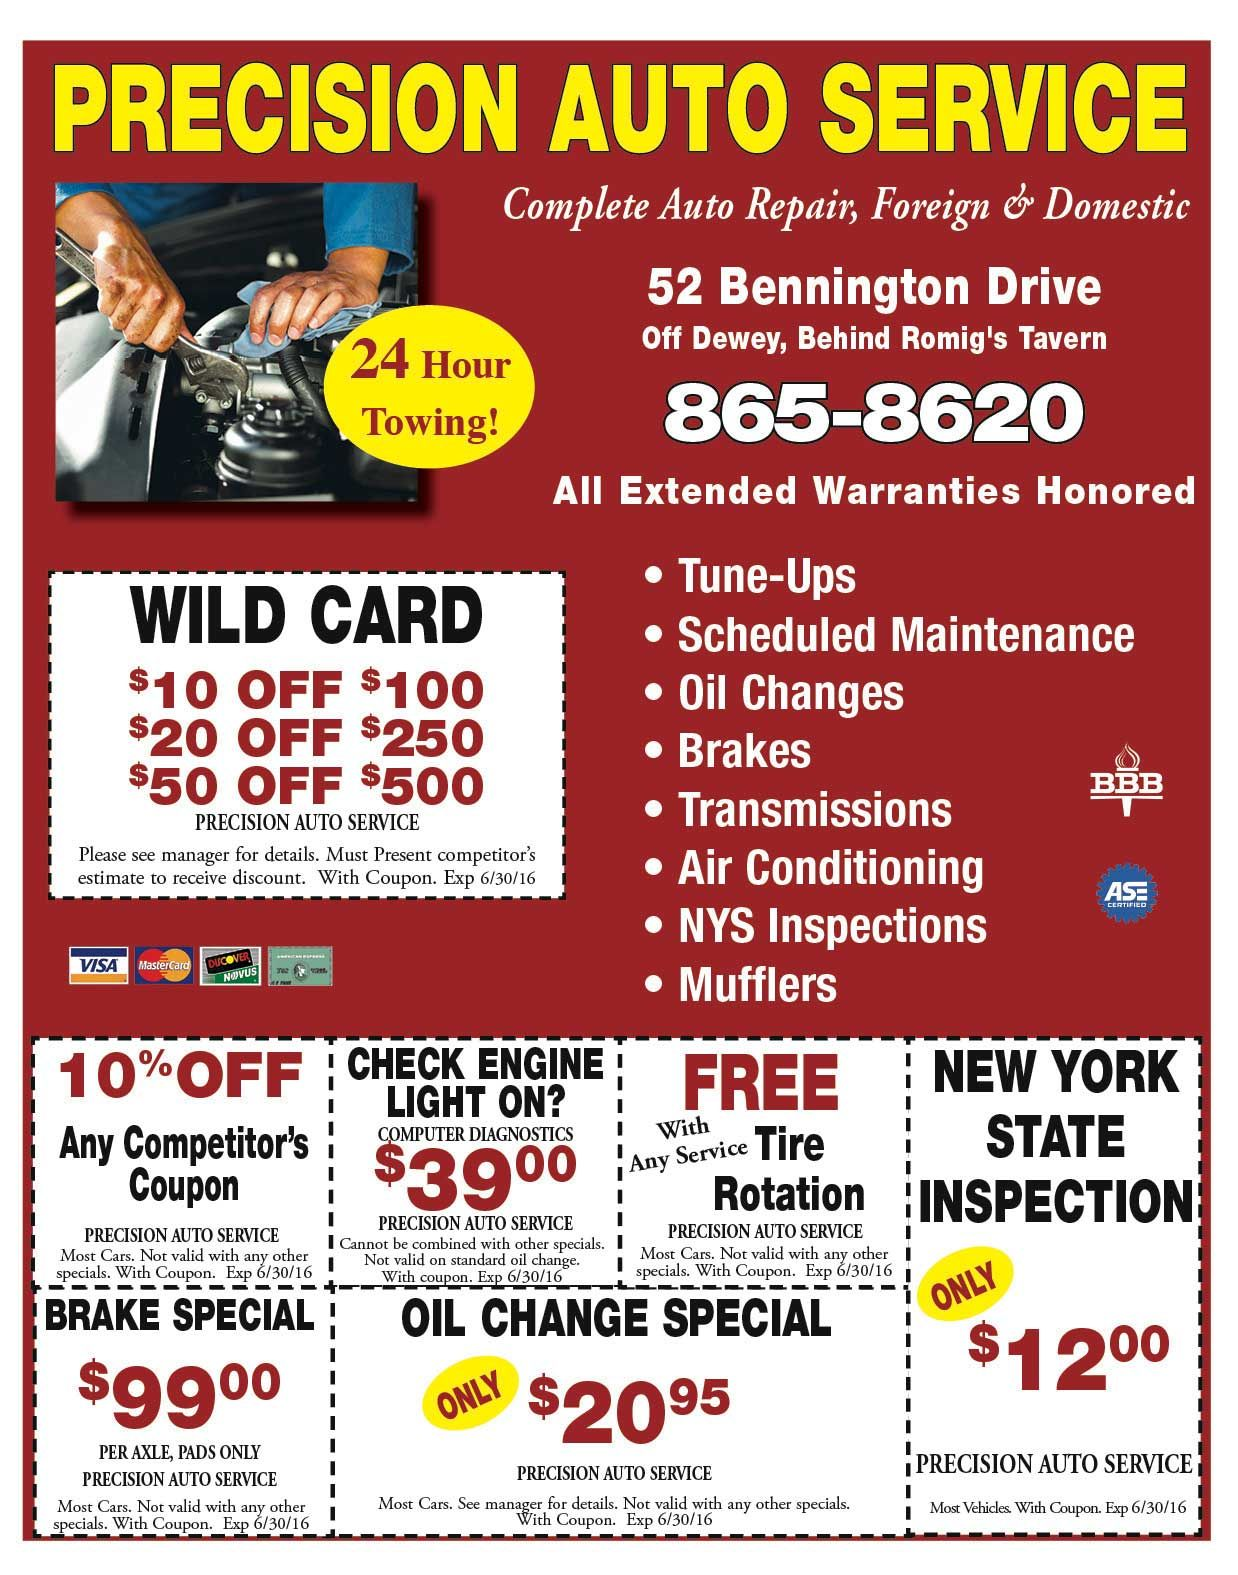 Precision Auto Service With Savings On Your Check Engine Light